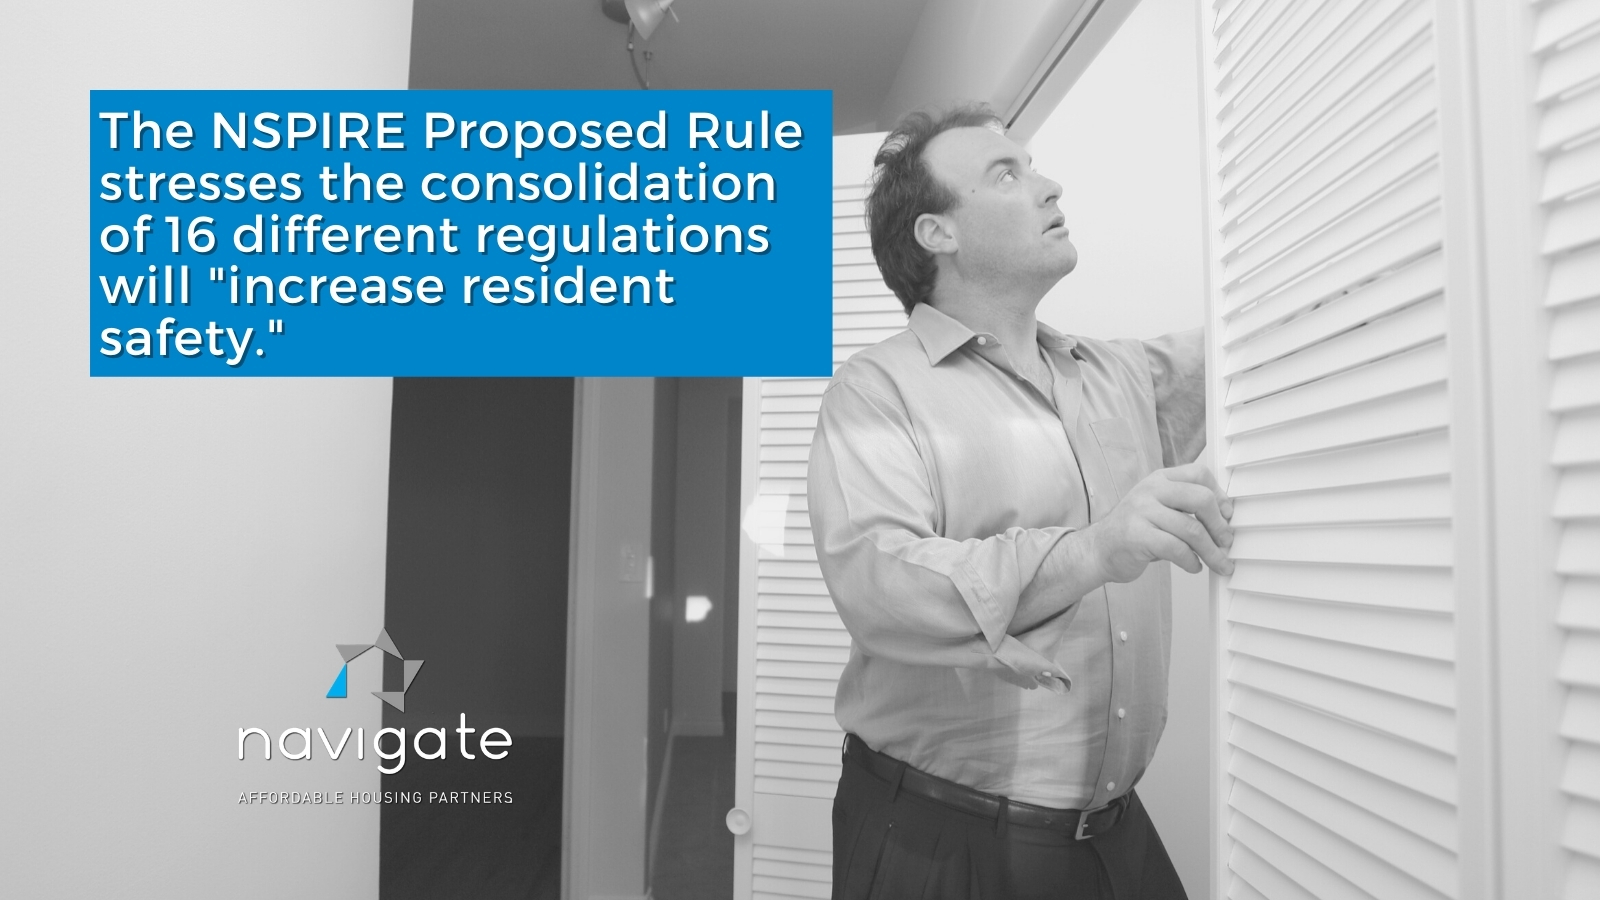 NSPIRE Proposed Rule